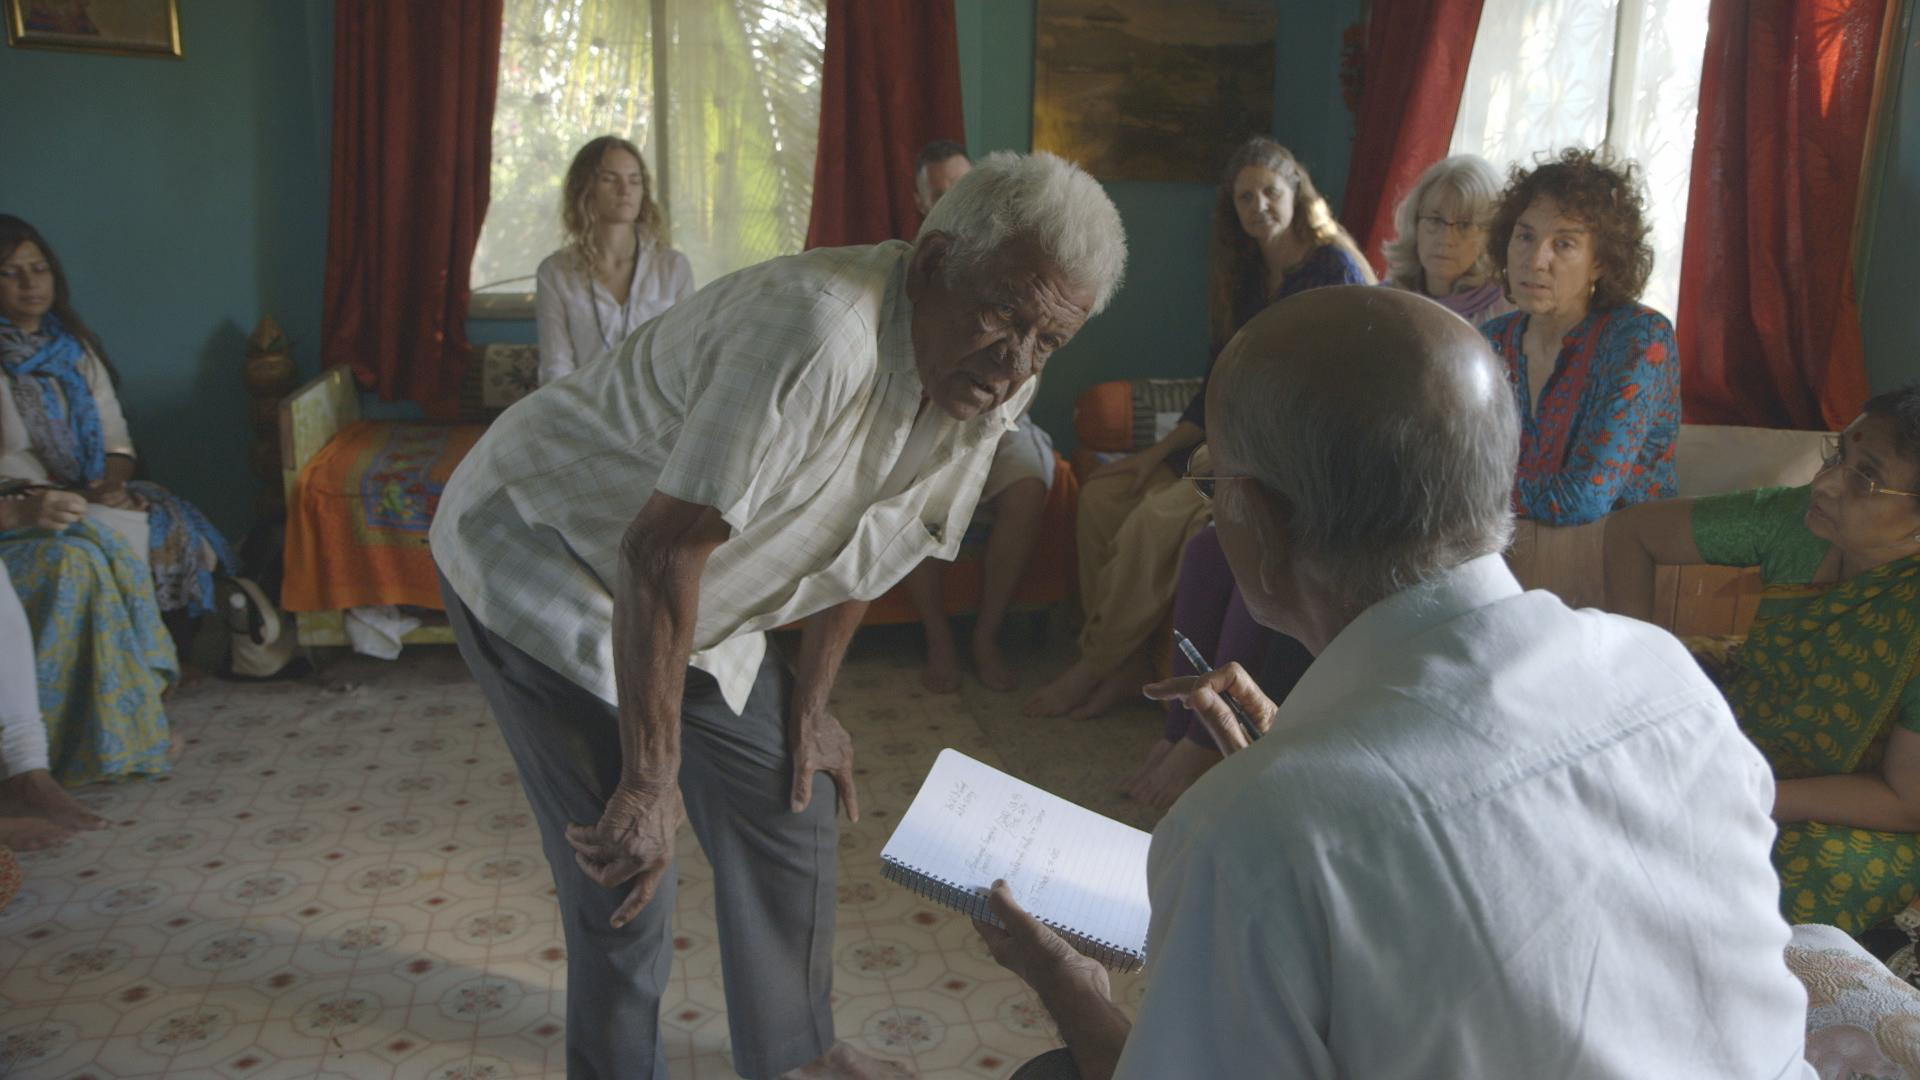 Dr. Lad seeing man from the local village while at his ancestral family home with students in Pune, India.